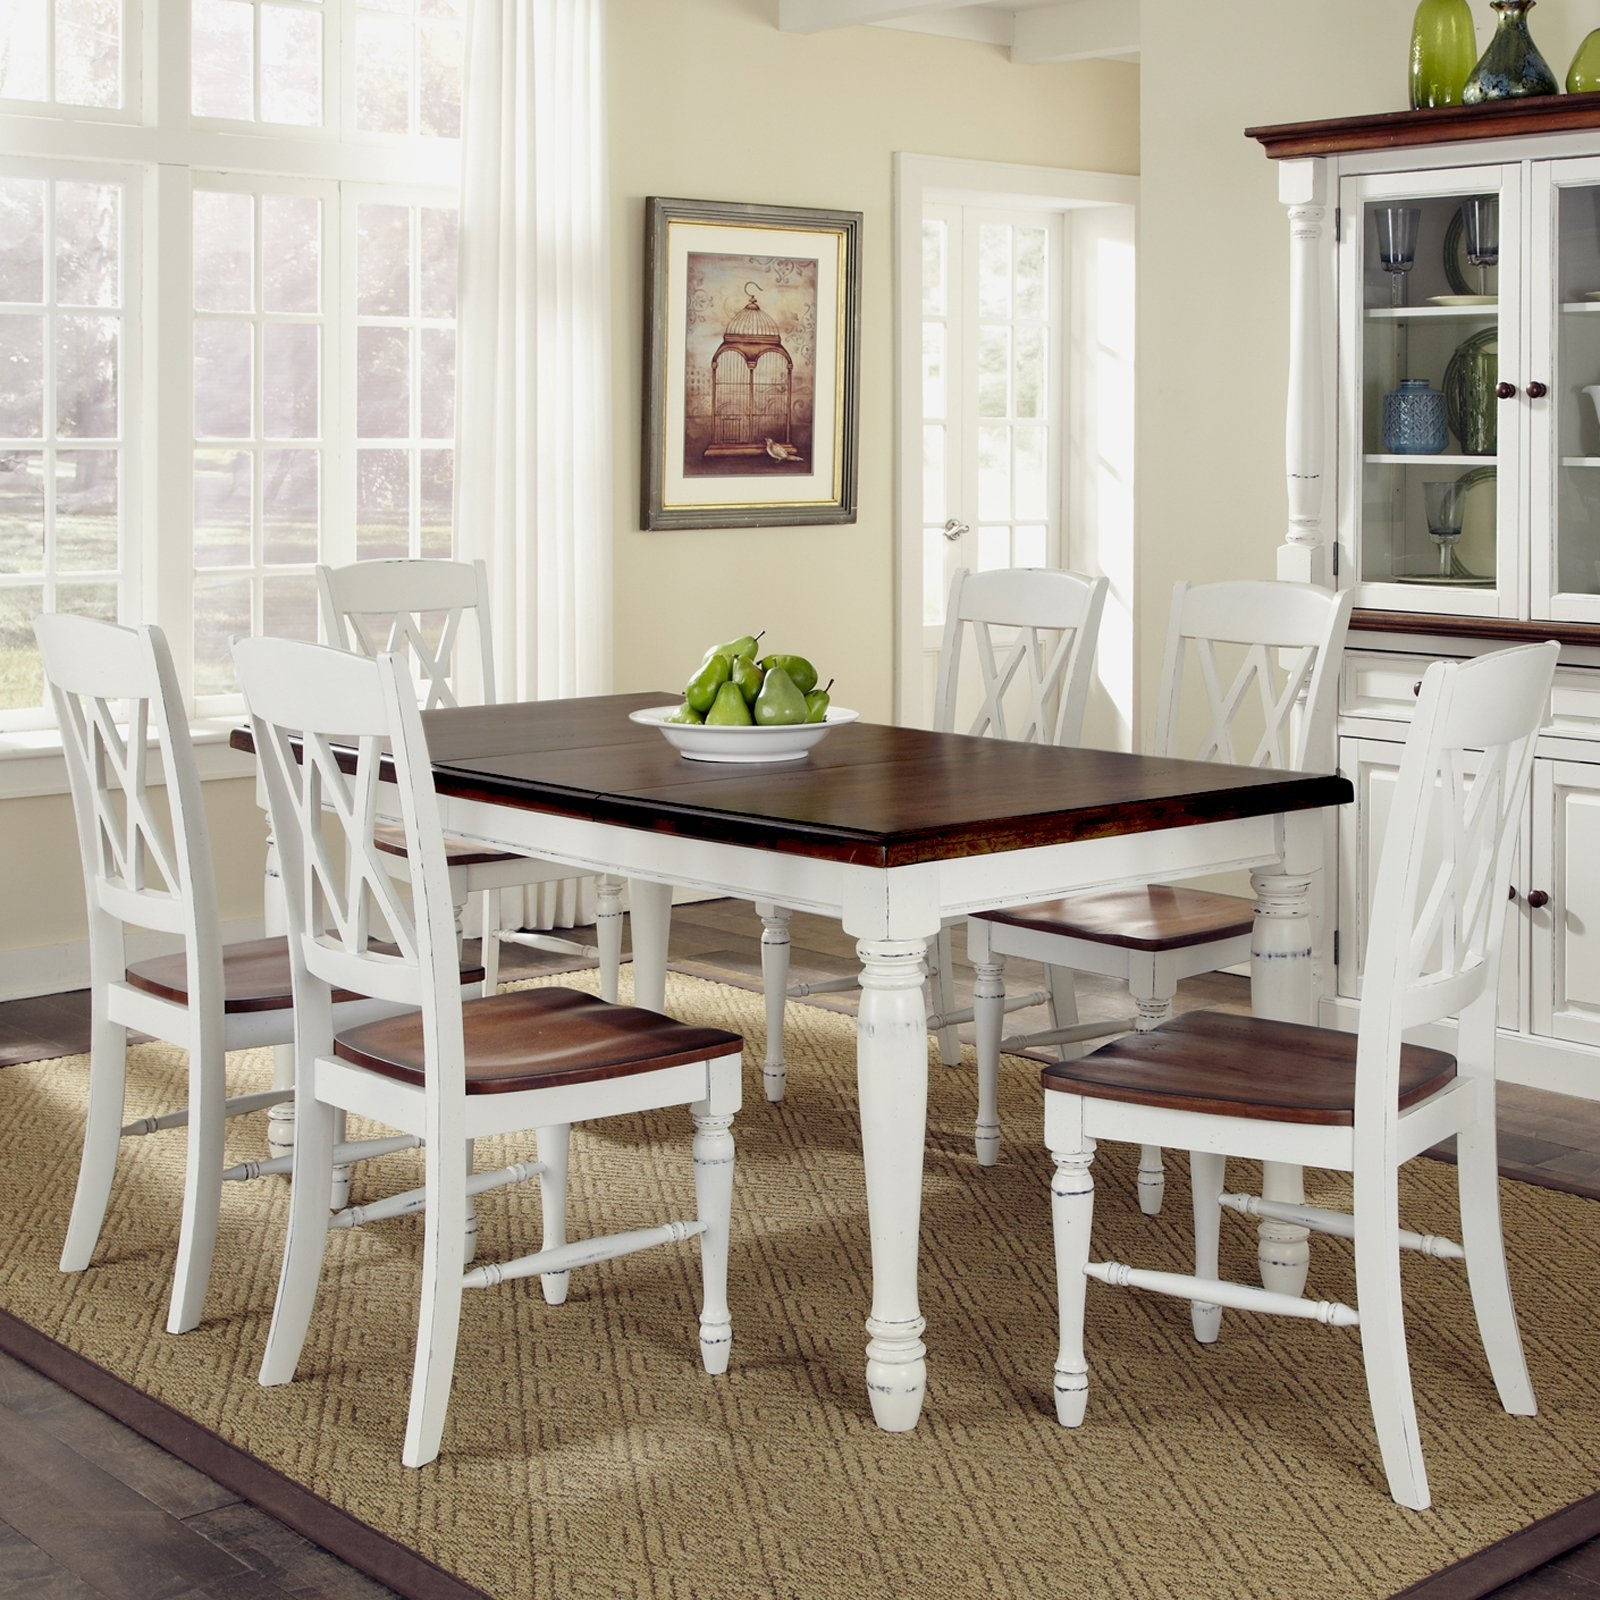 Home Styles Monarch Rectangular Dining Table And 6 Double X Back Regarding Most Up To Date Dining Table Chair Sets (View 15 of 25)